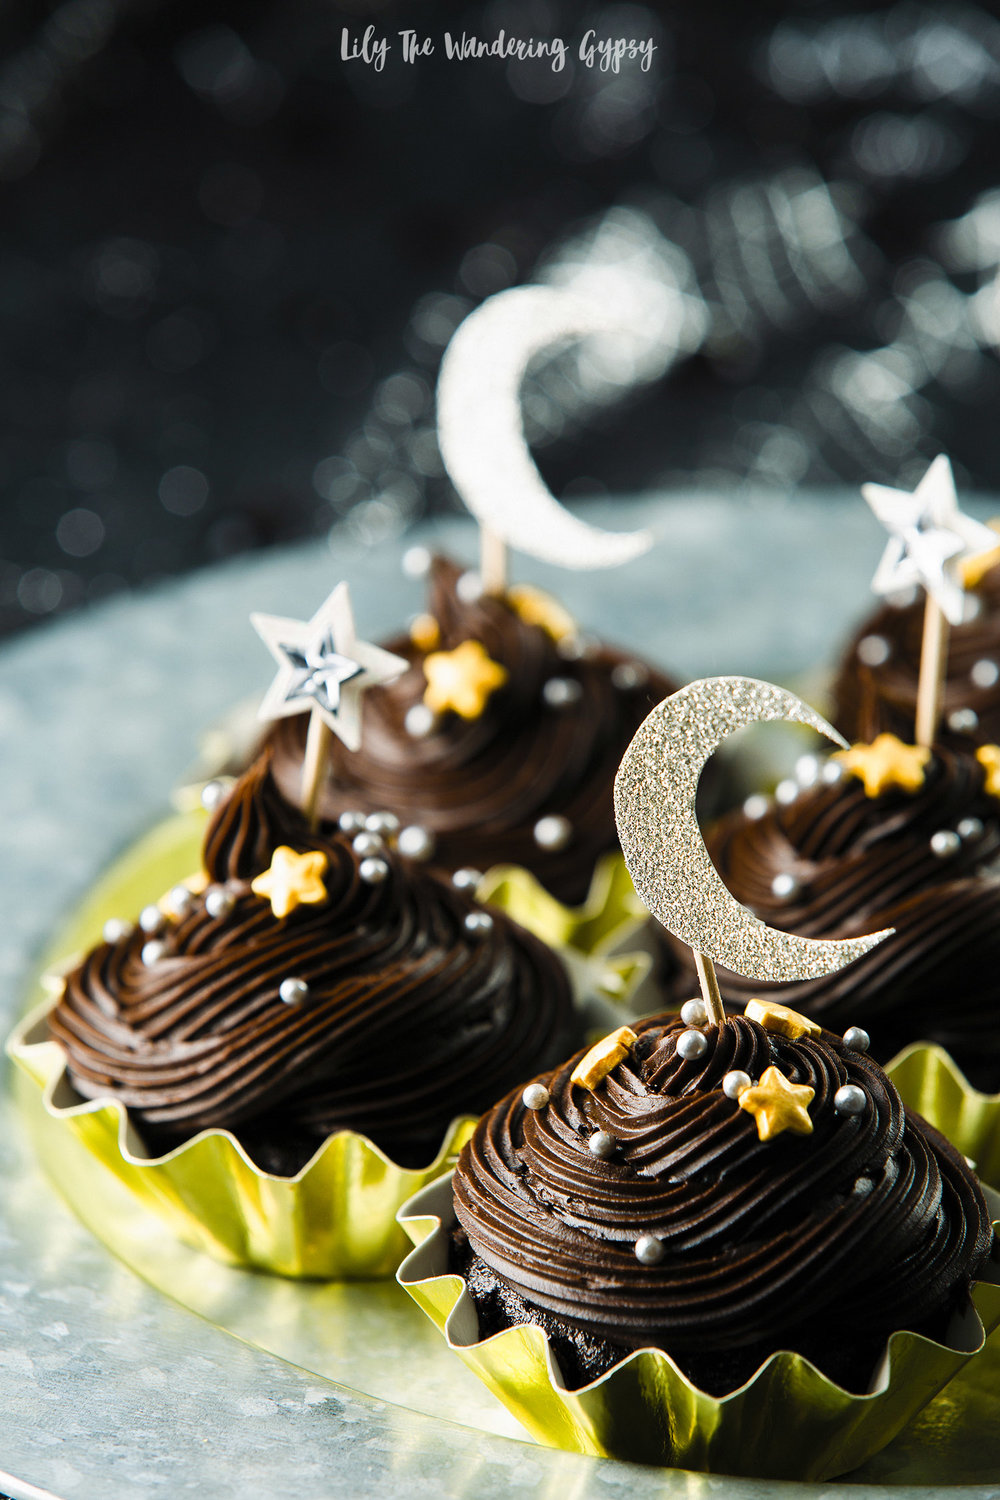 Dark Chocolate Crescent Moon Cupcakes#7MoonsWine #MadeForTheMoonlight #CollectiveBias